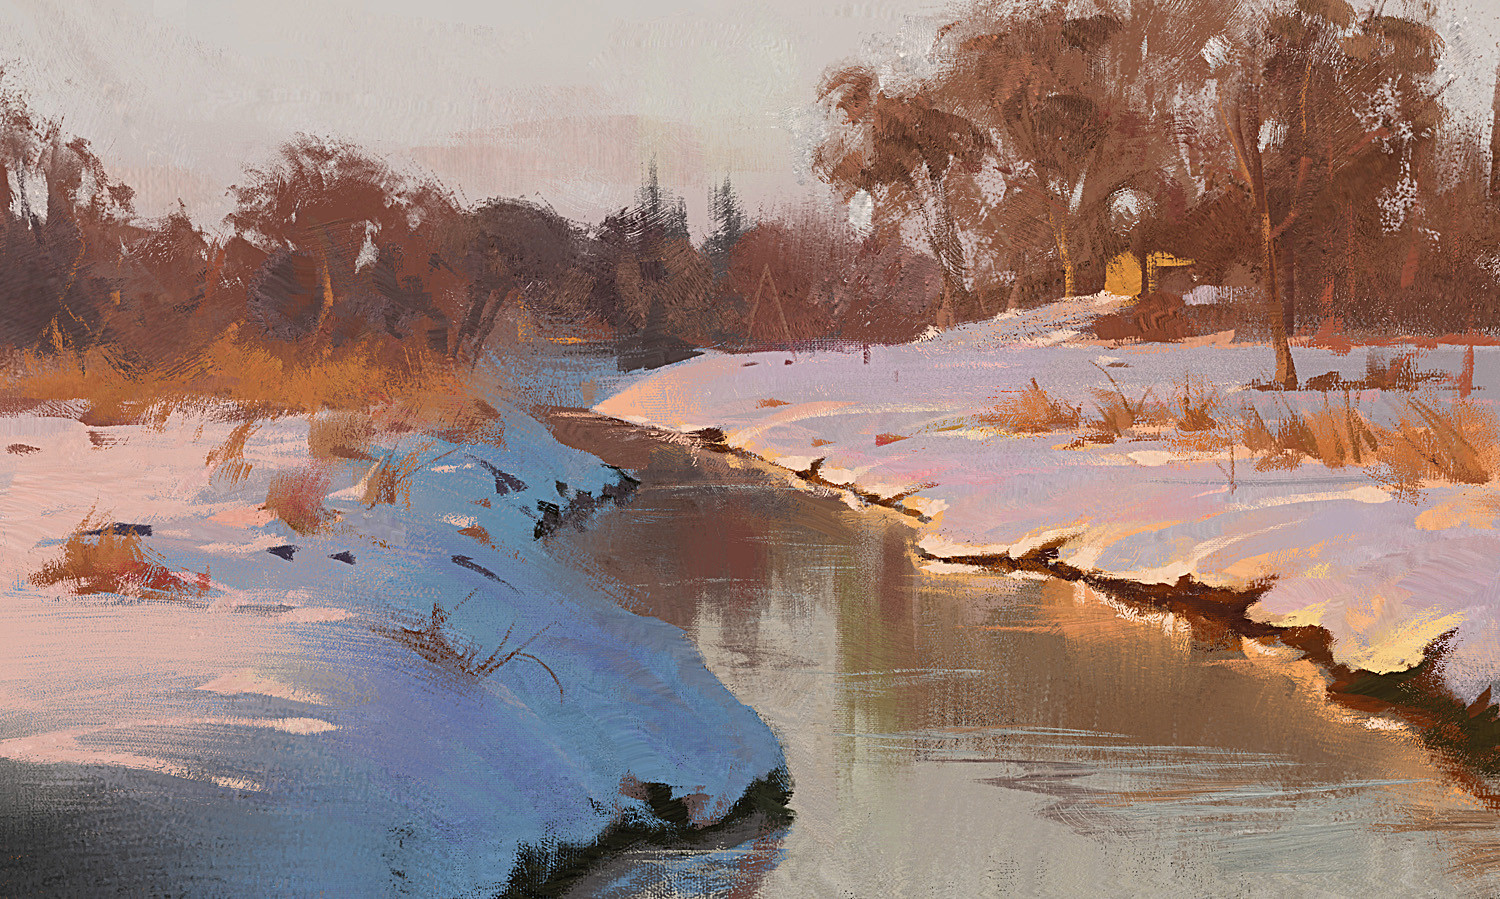 Grzegorz Rutkowski Digital Painting Illustration winter snow sunset